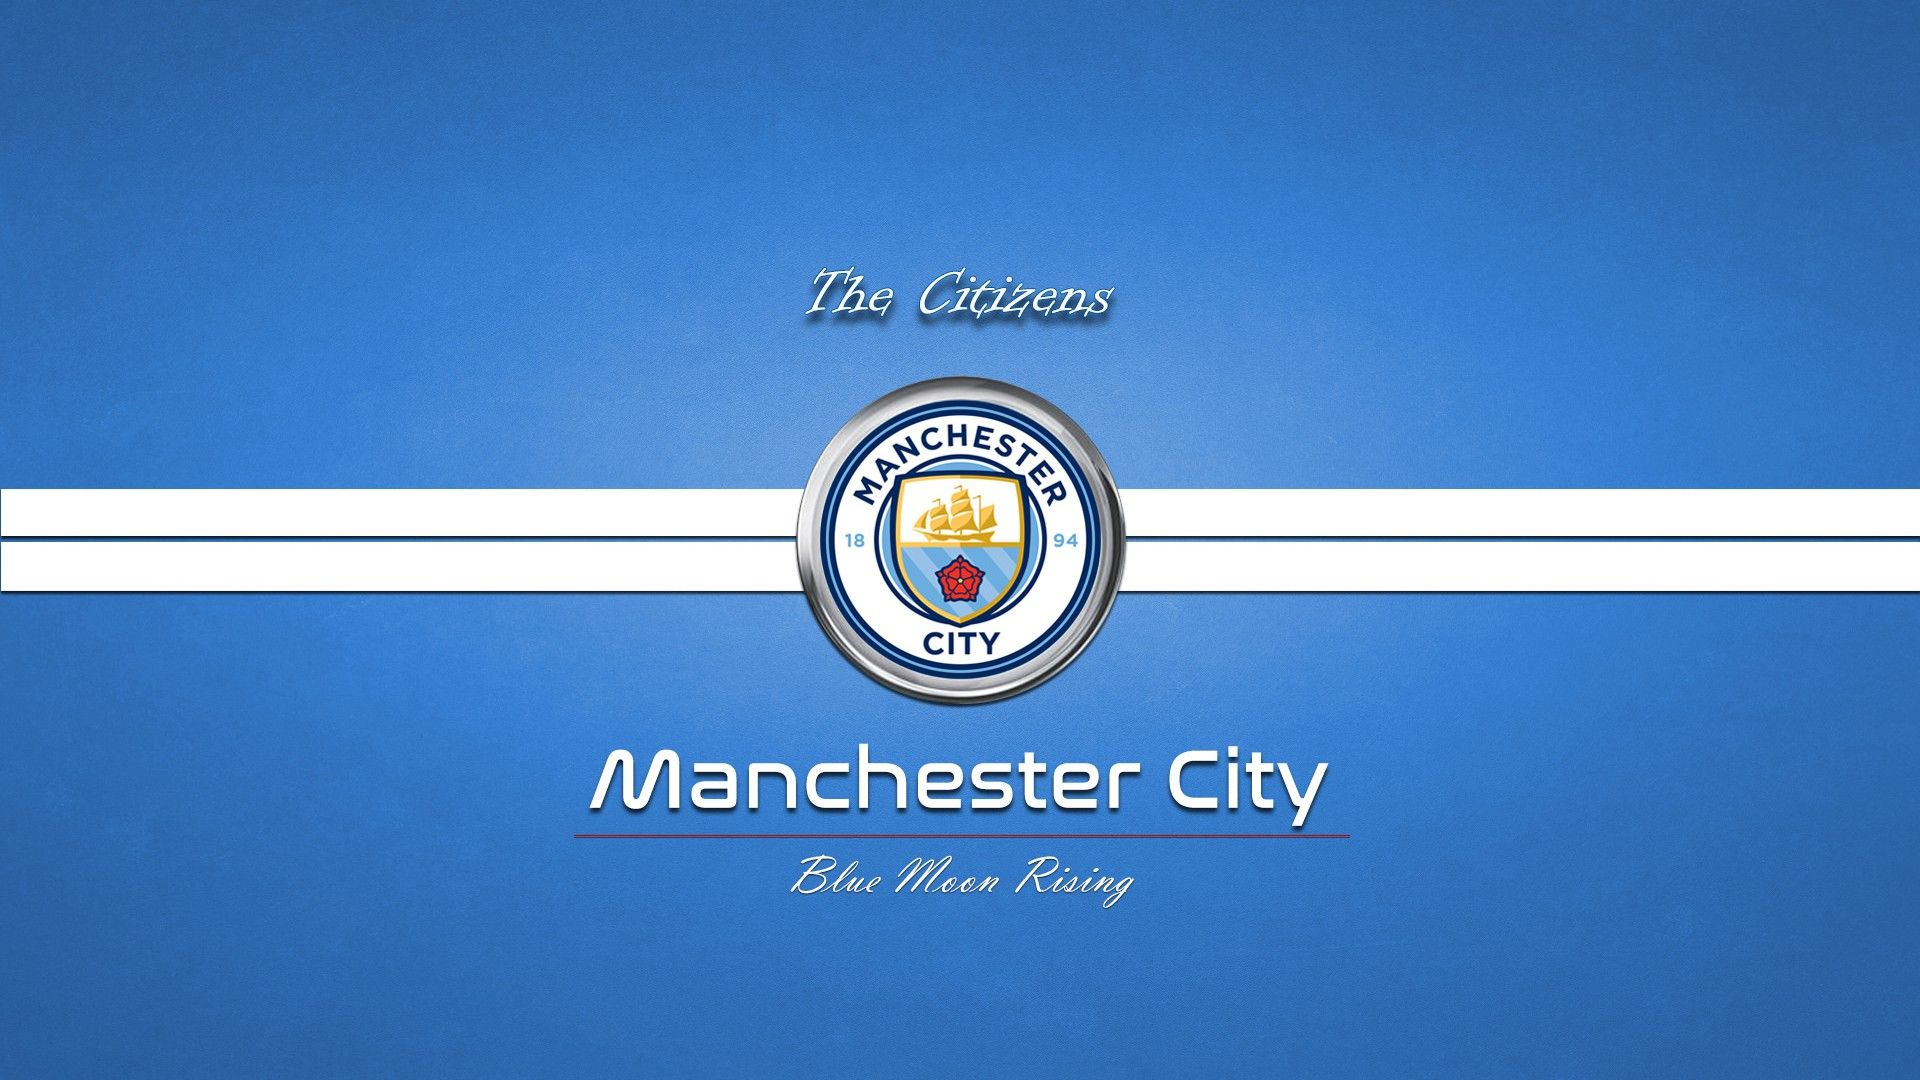 Manchester City hd wallpaper 1080p for pc